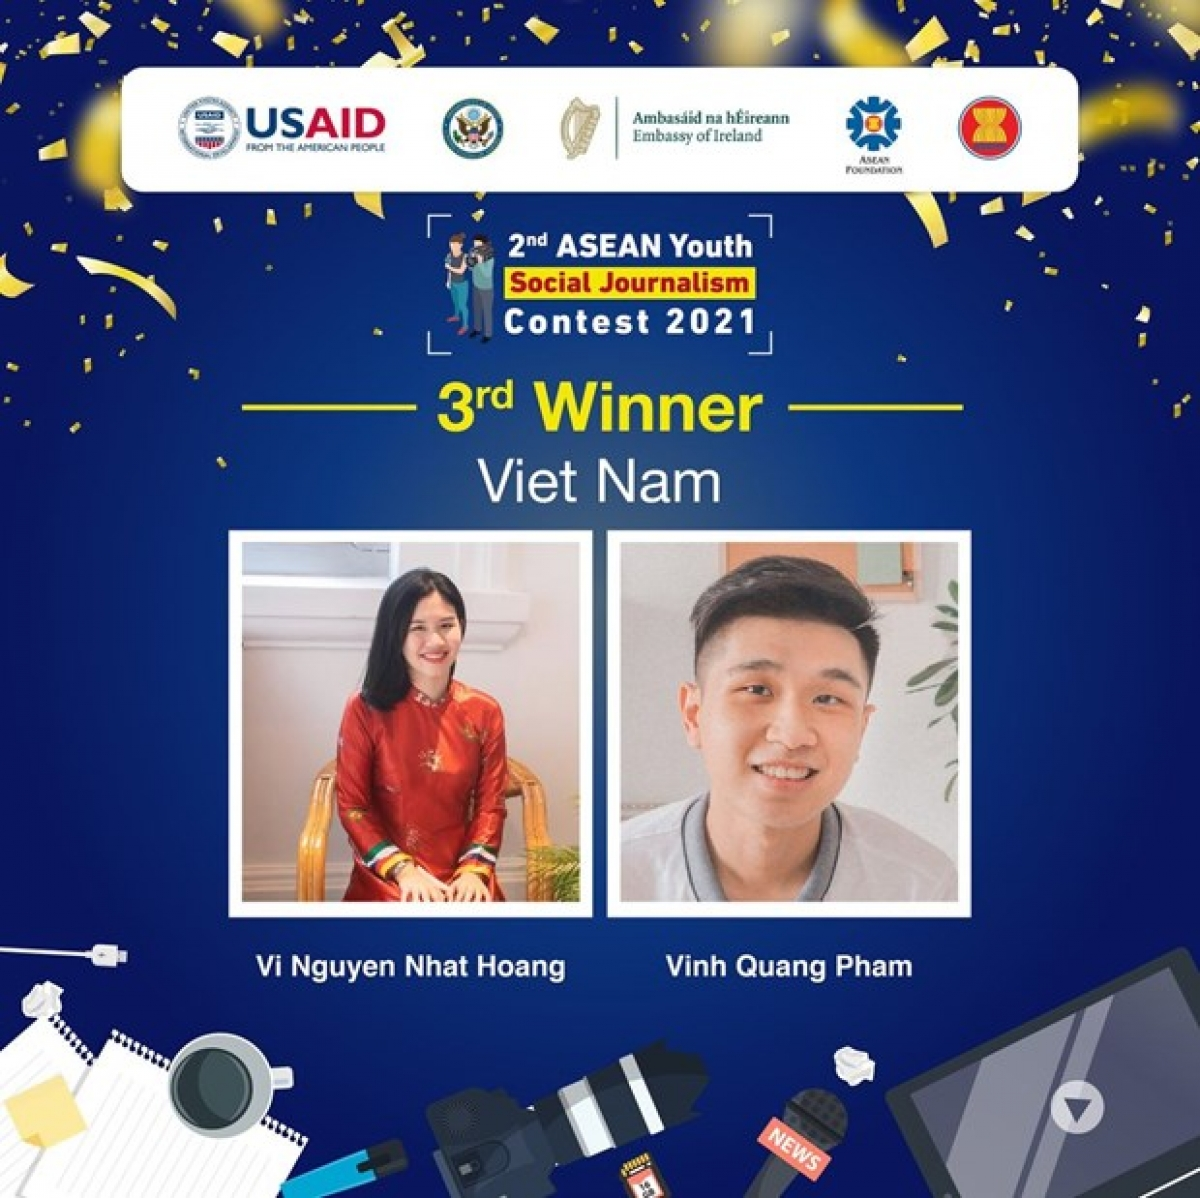 Two local students win ASEAN Youth Social Journalism Contest 2021